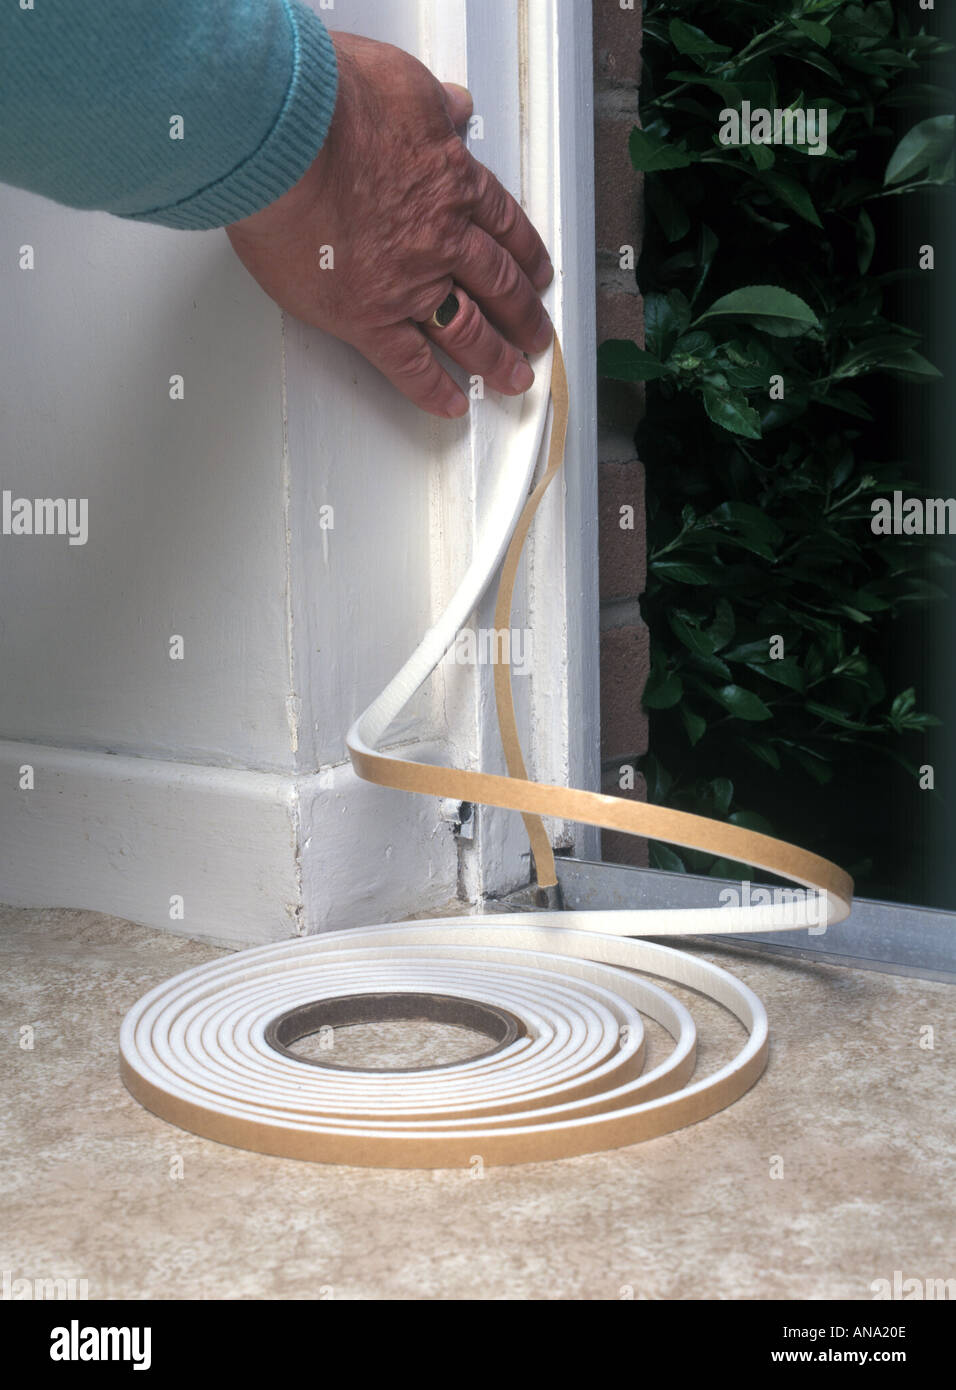 fitting self adhesive PVC foam draught excluder round a door opening to save heat - Stock Image